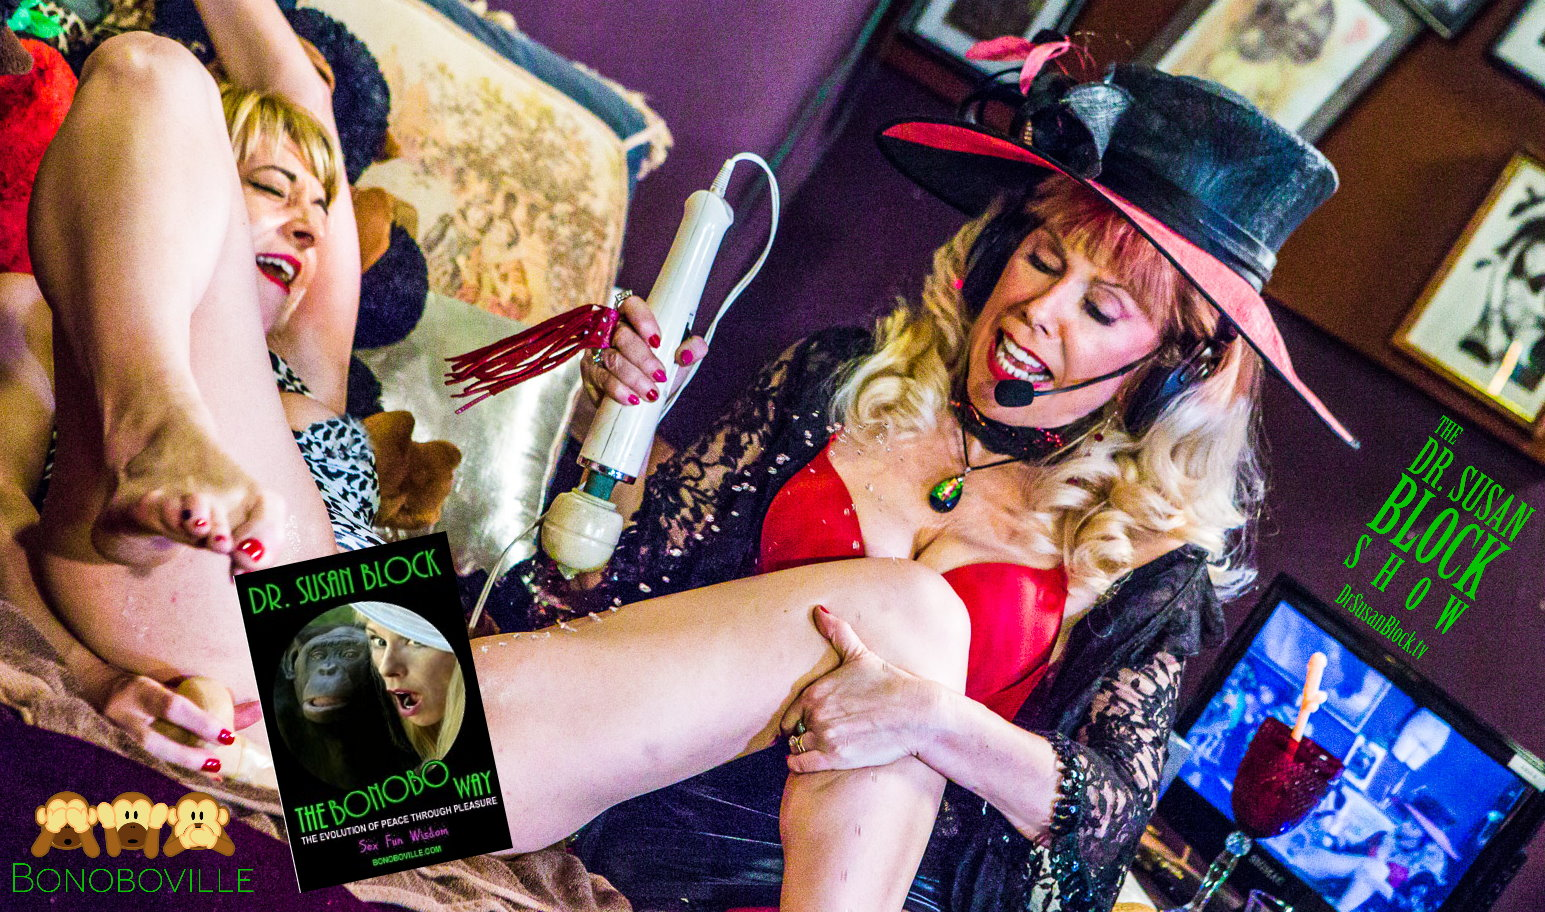 50 Shades of Sex Ed in a Circus of Spanking, Squirting and LoVE